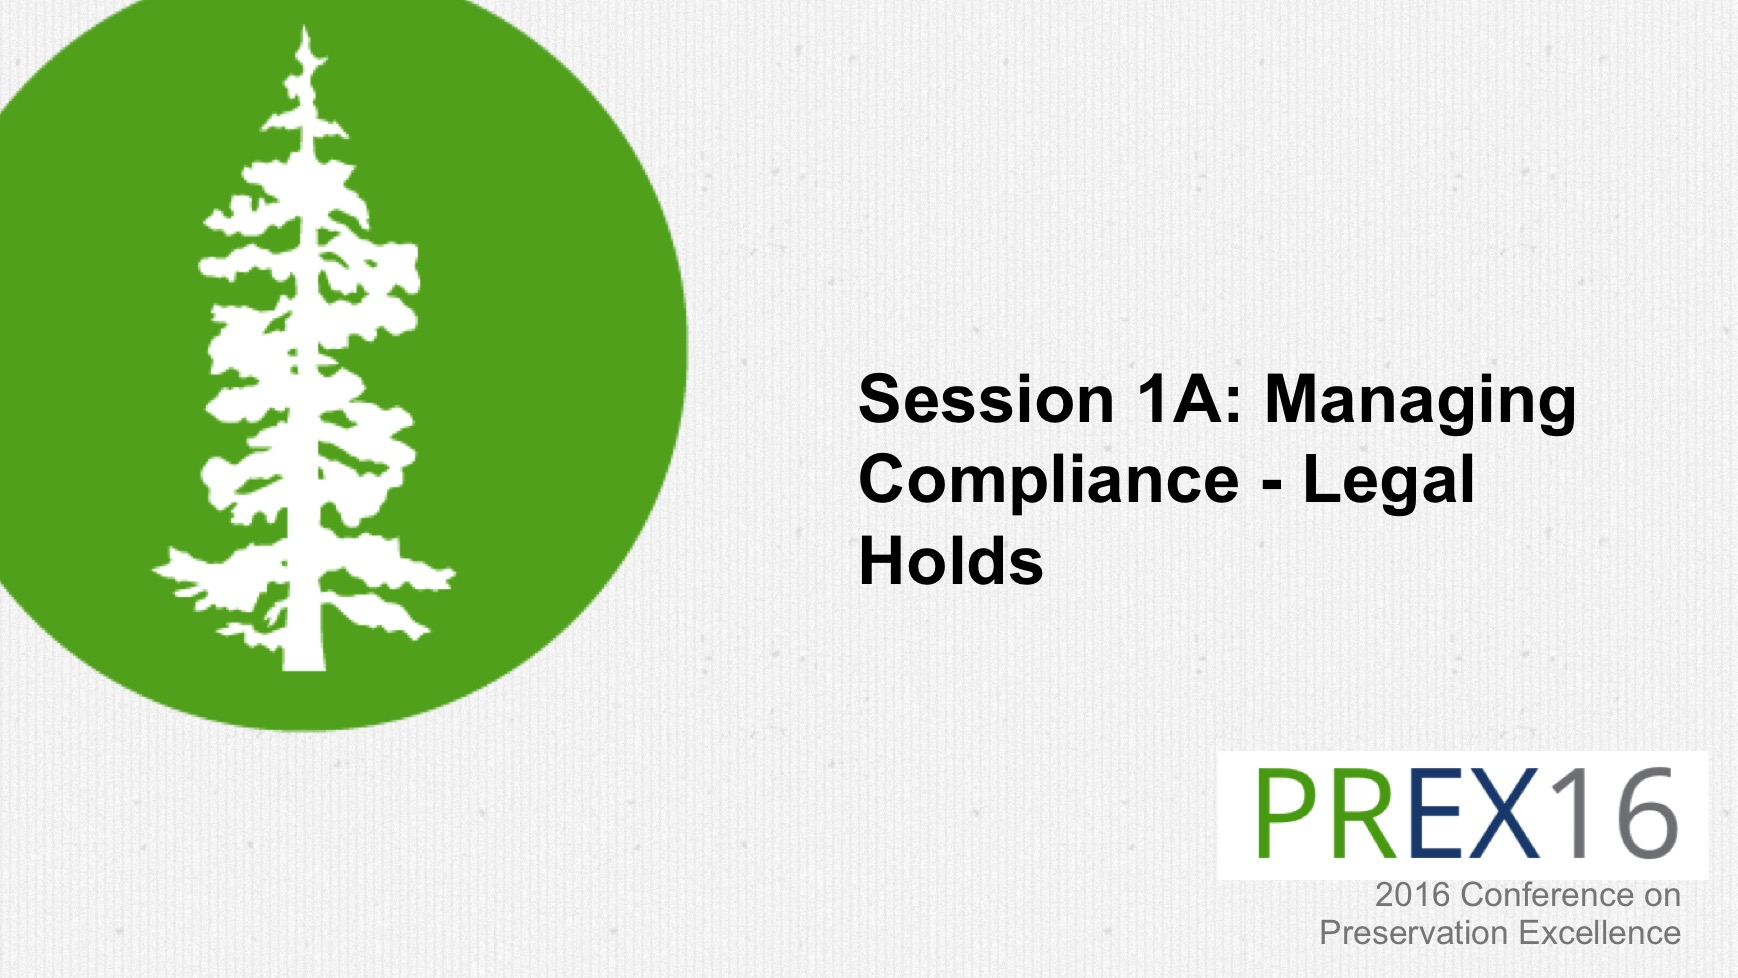 Session 1A: Managing Compliance